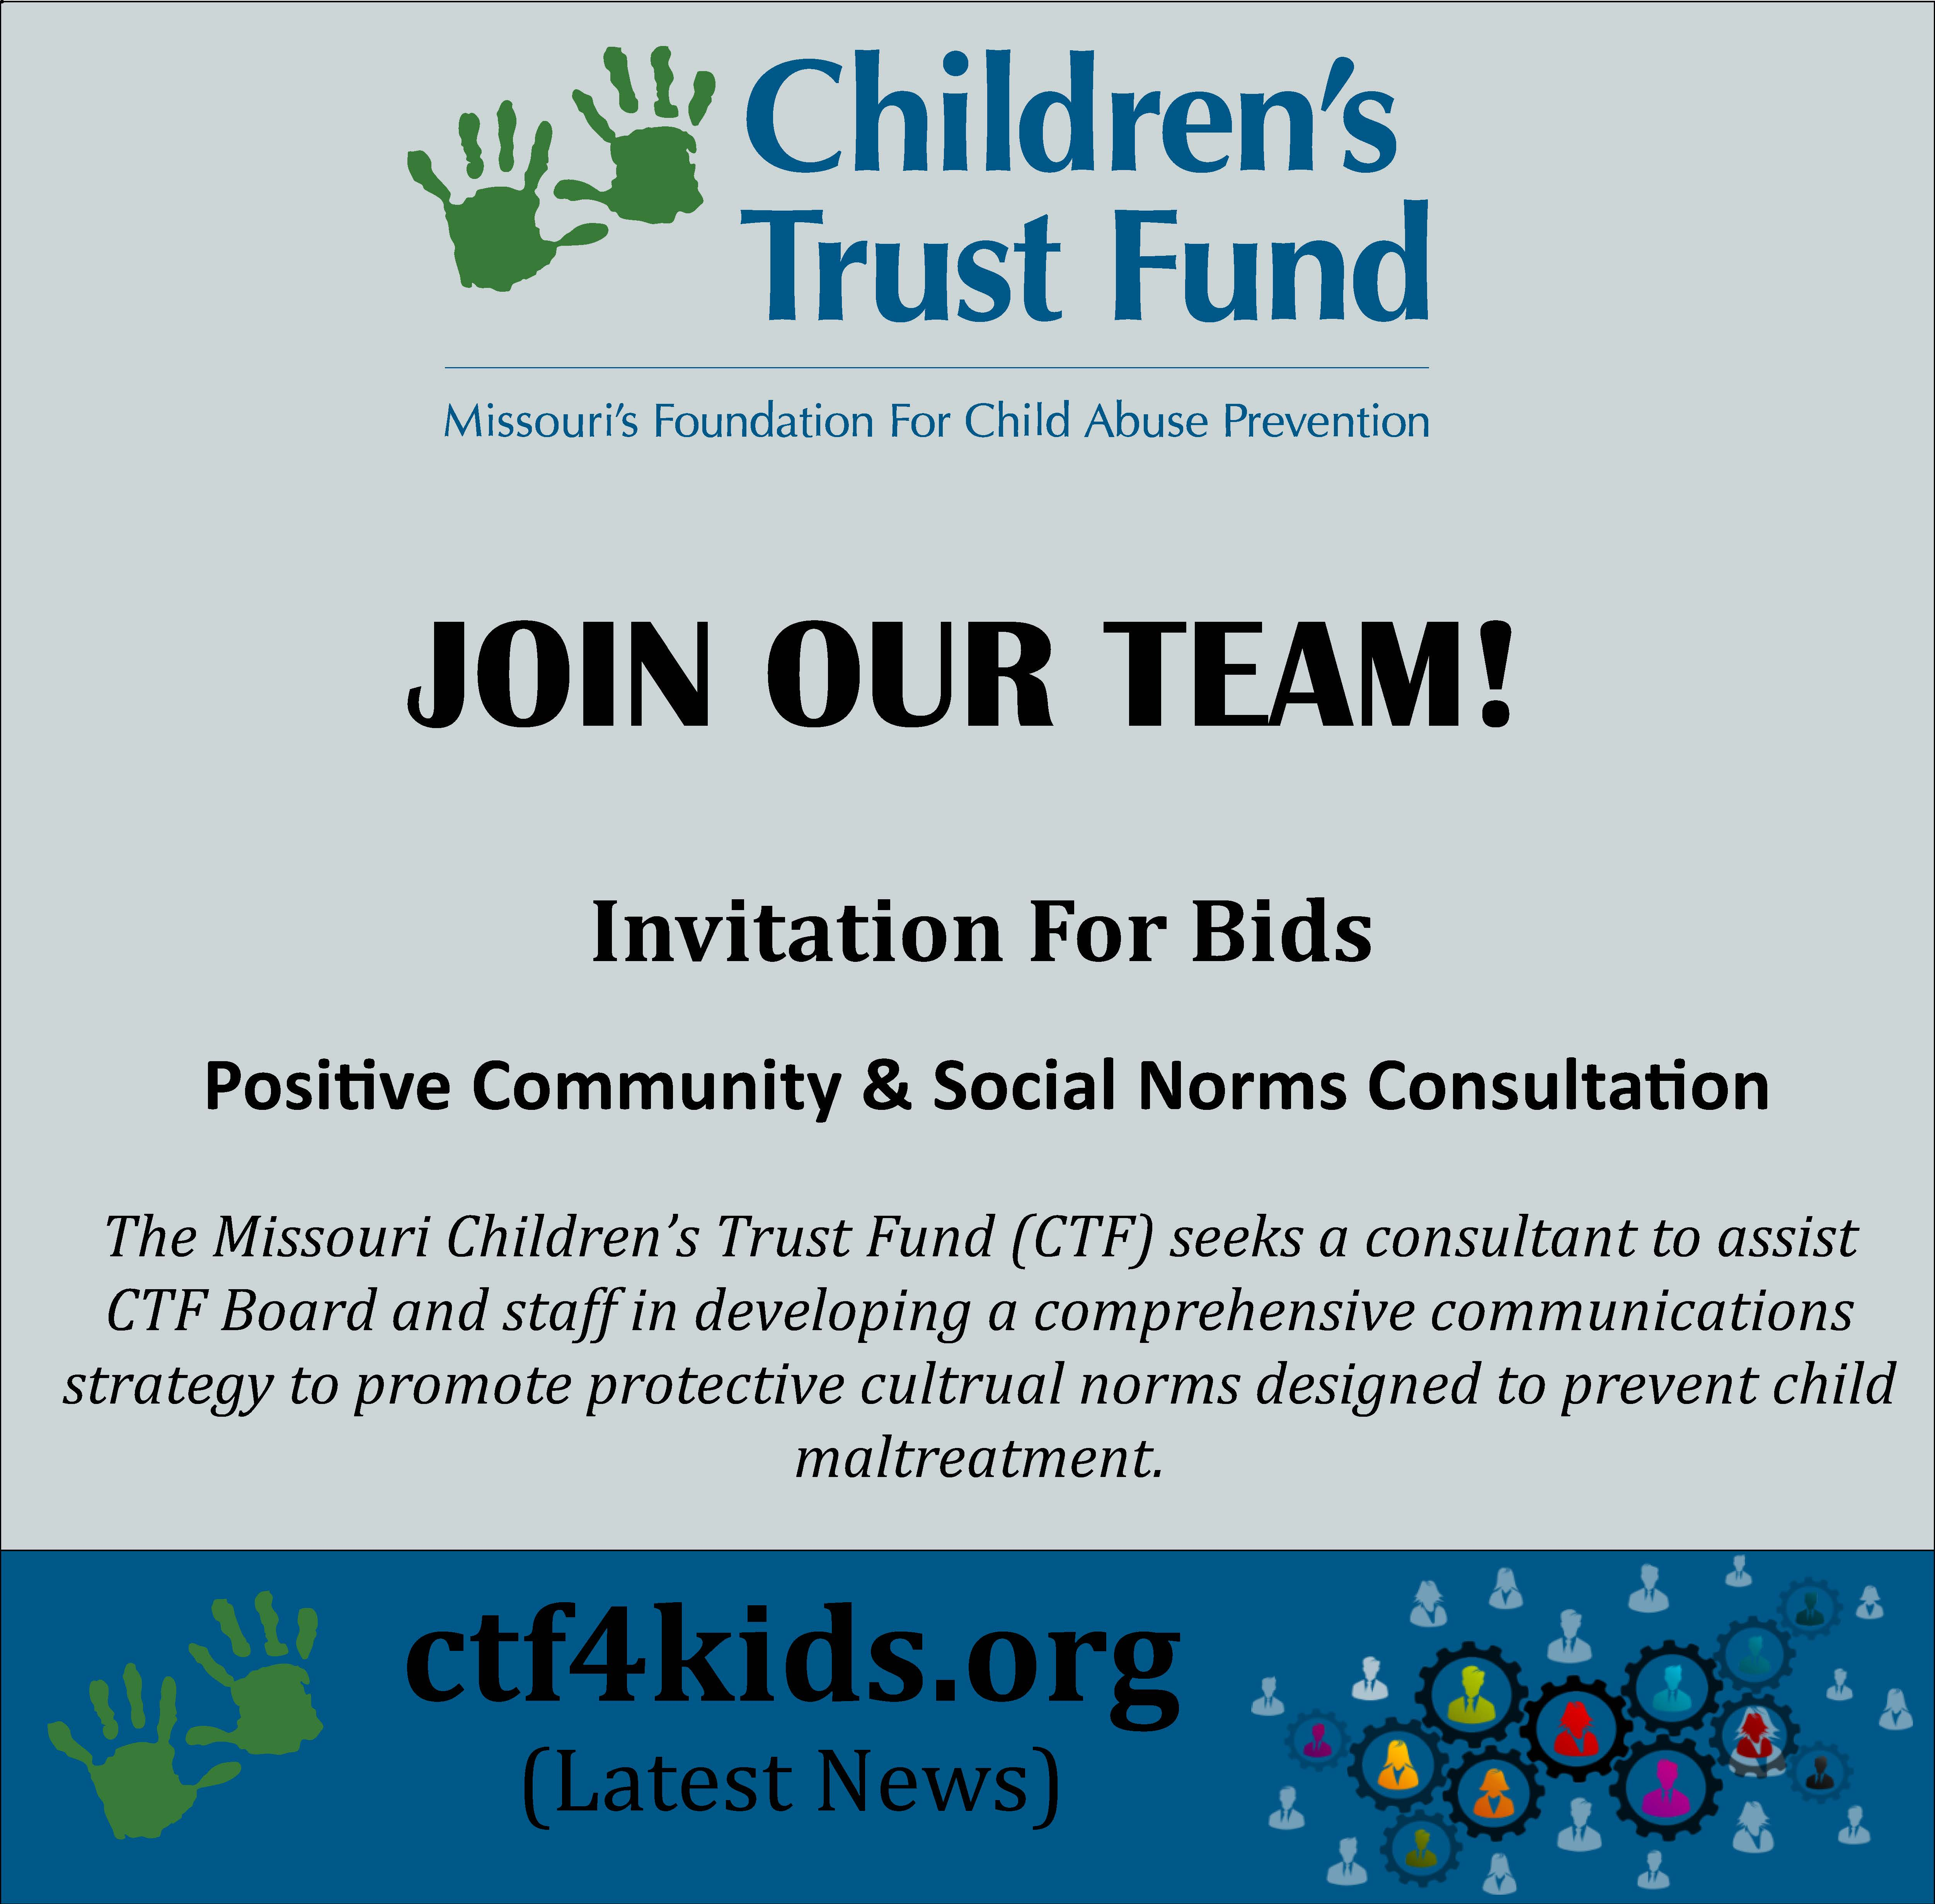 INVITATION for BIDS – Positive Community and Social Norms Consultation